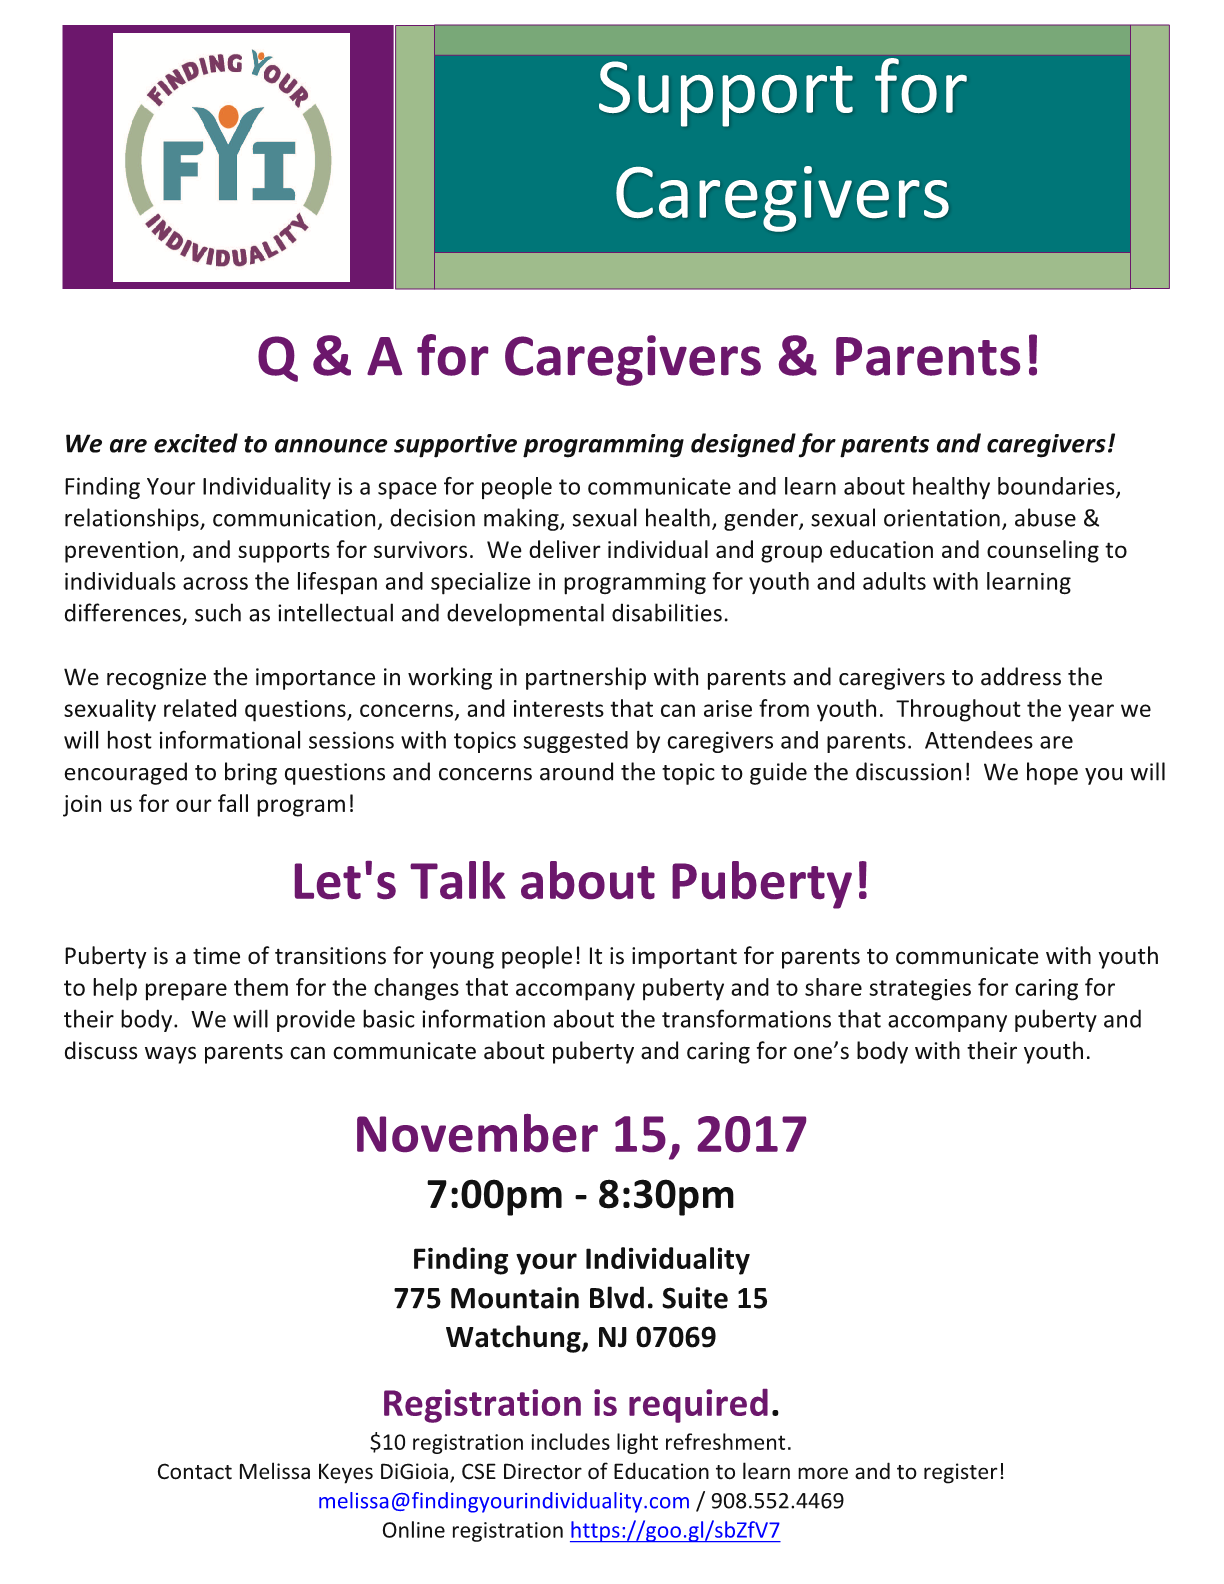 Q & A for Caregivers & Parents! Let's Talk about Puberty!